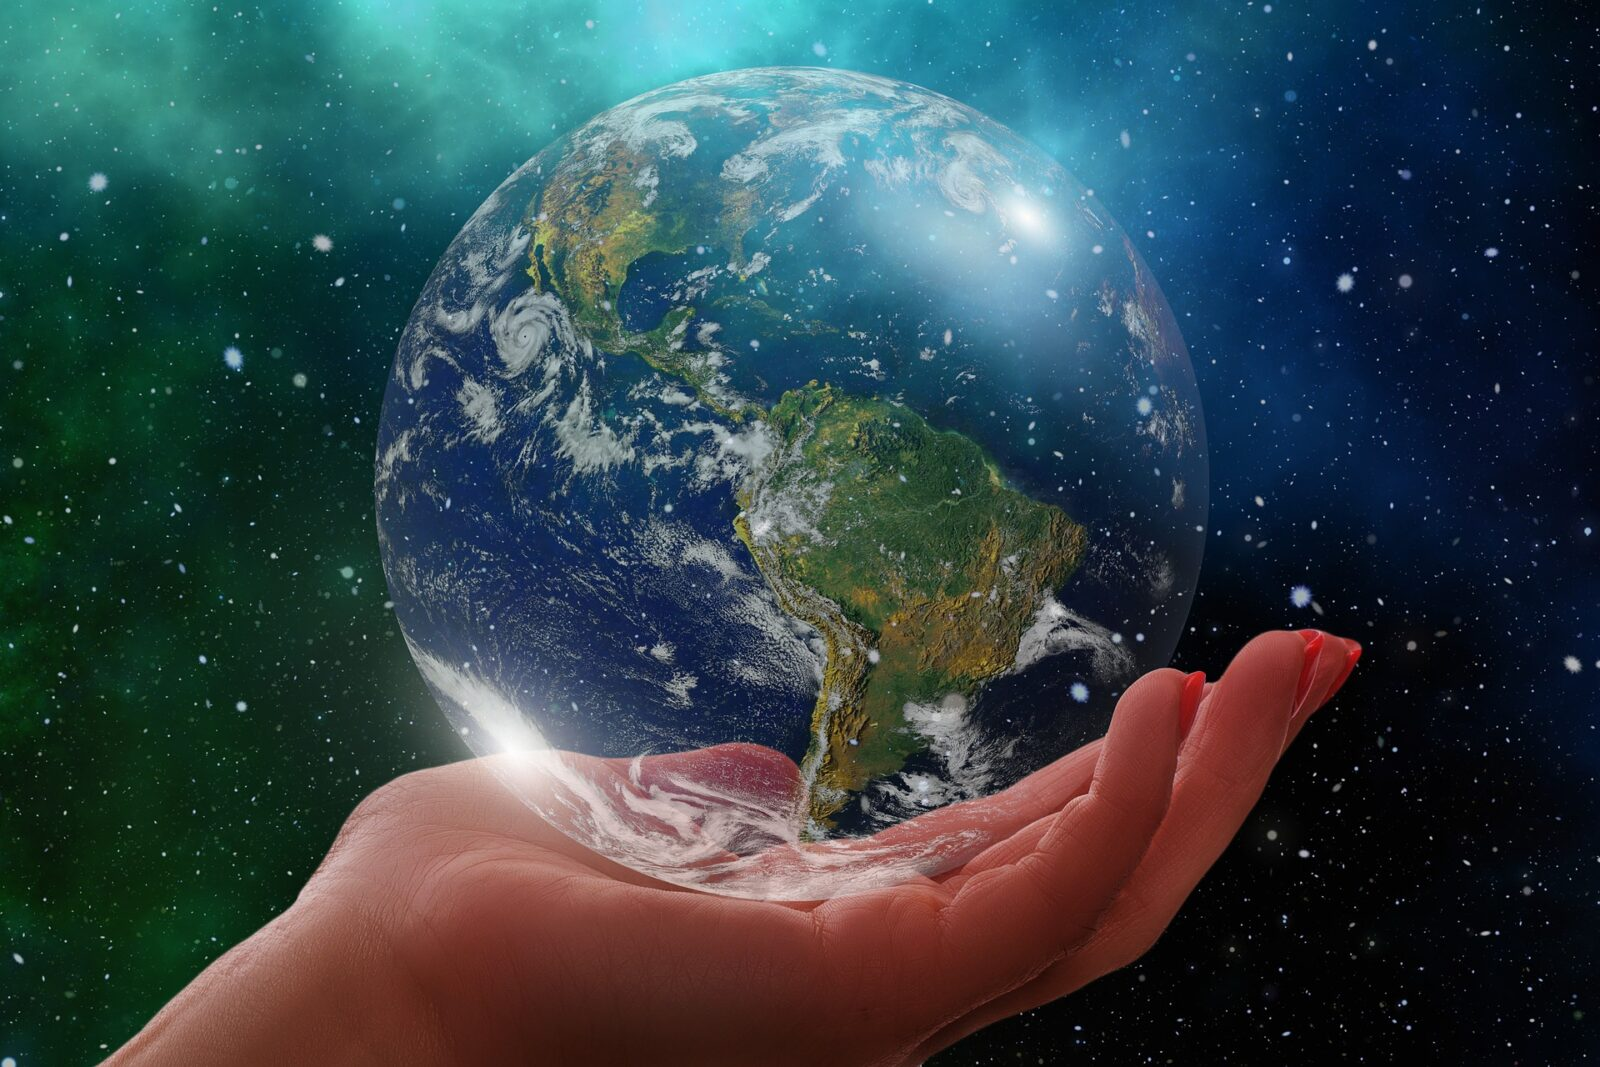 Hand holding a transparent globe